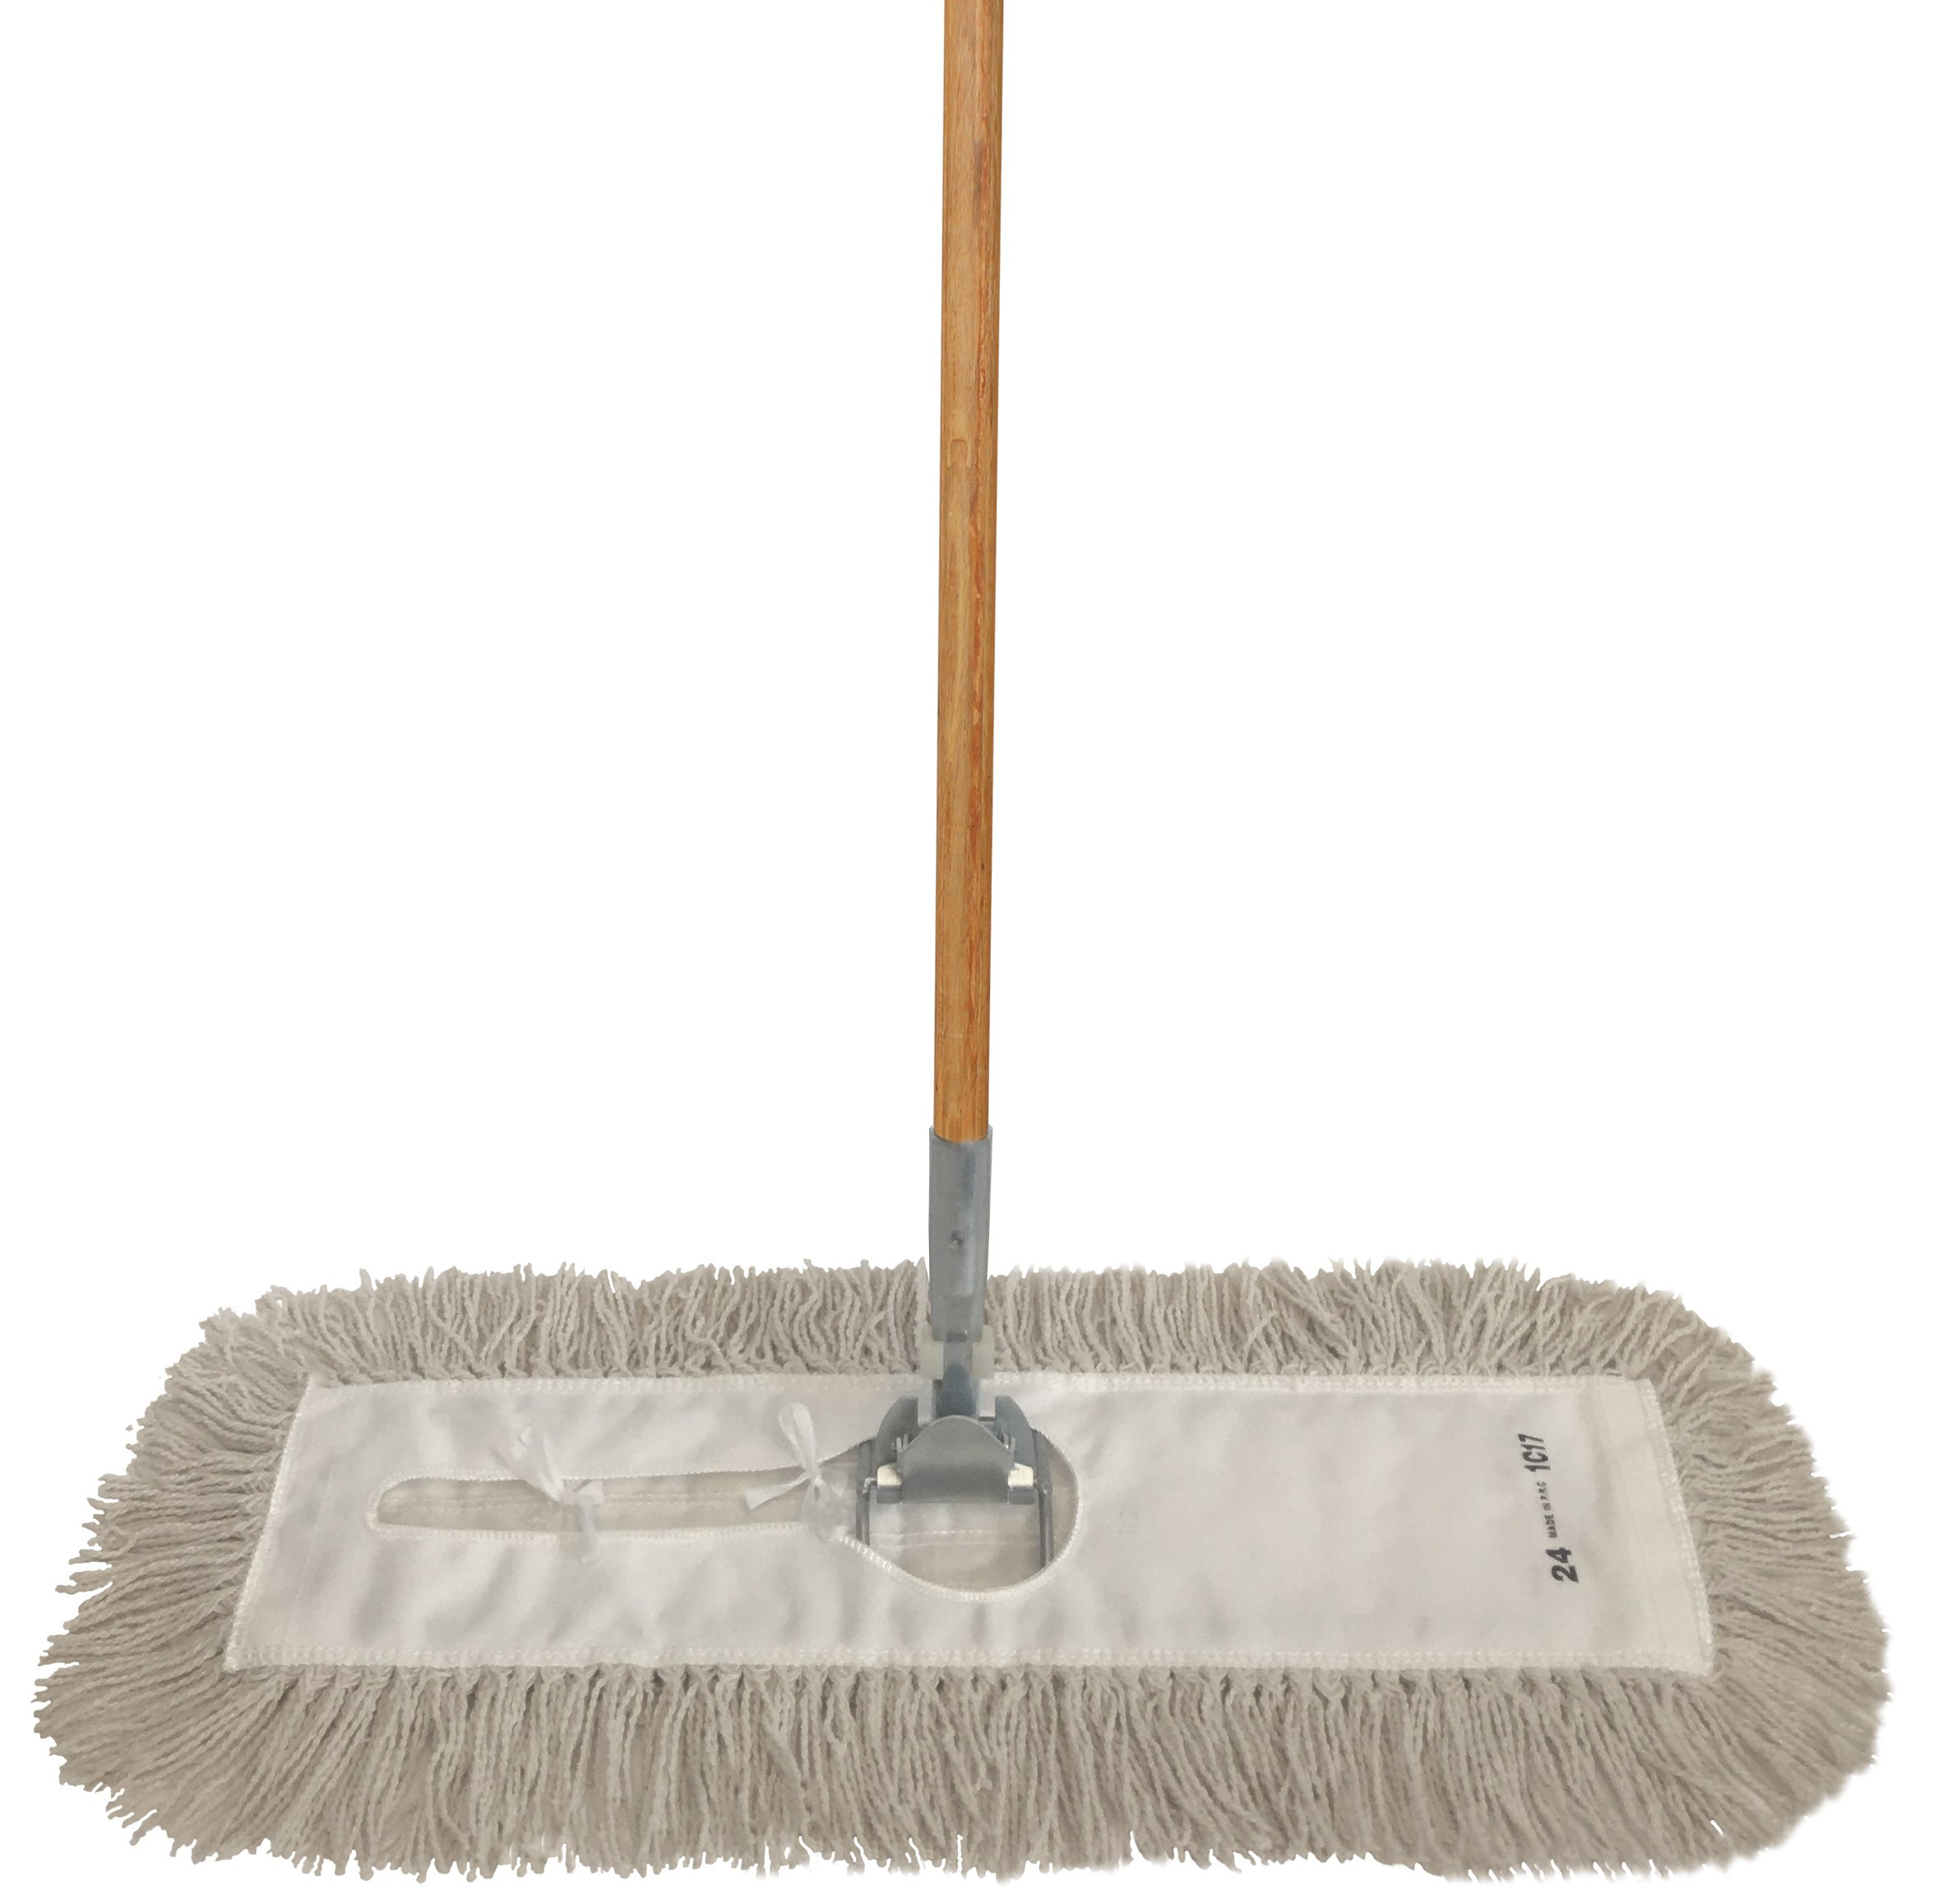 Dust Mop Kit 60'' : (1) 60'' White Industrial Closed-Loop Dust Mop, (1) 60'' Wire Dust Mop Frame & (1) Dust Mop Handle Clip-On Style Wood by Direct Mop Sales, Inc.